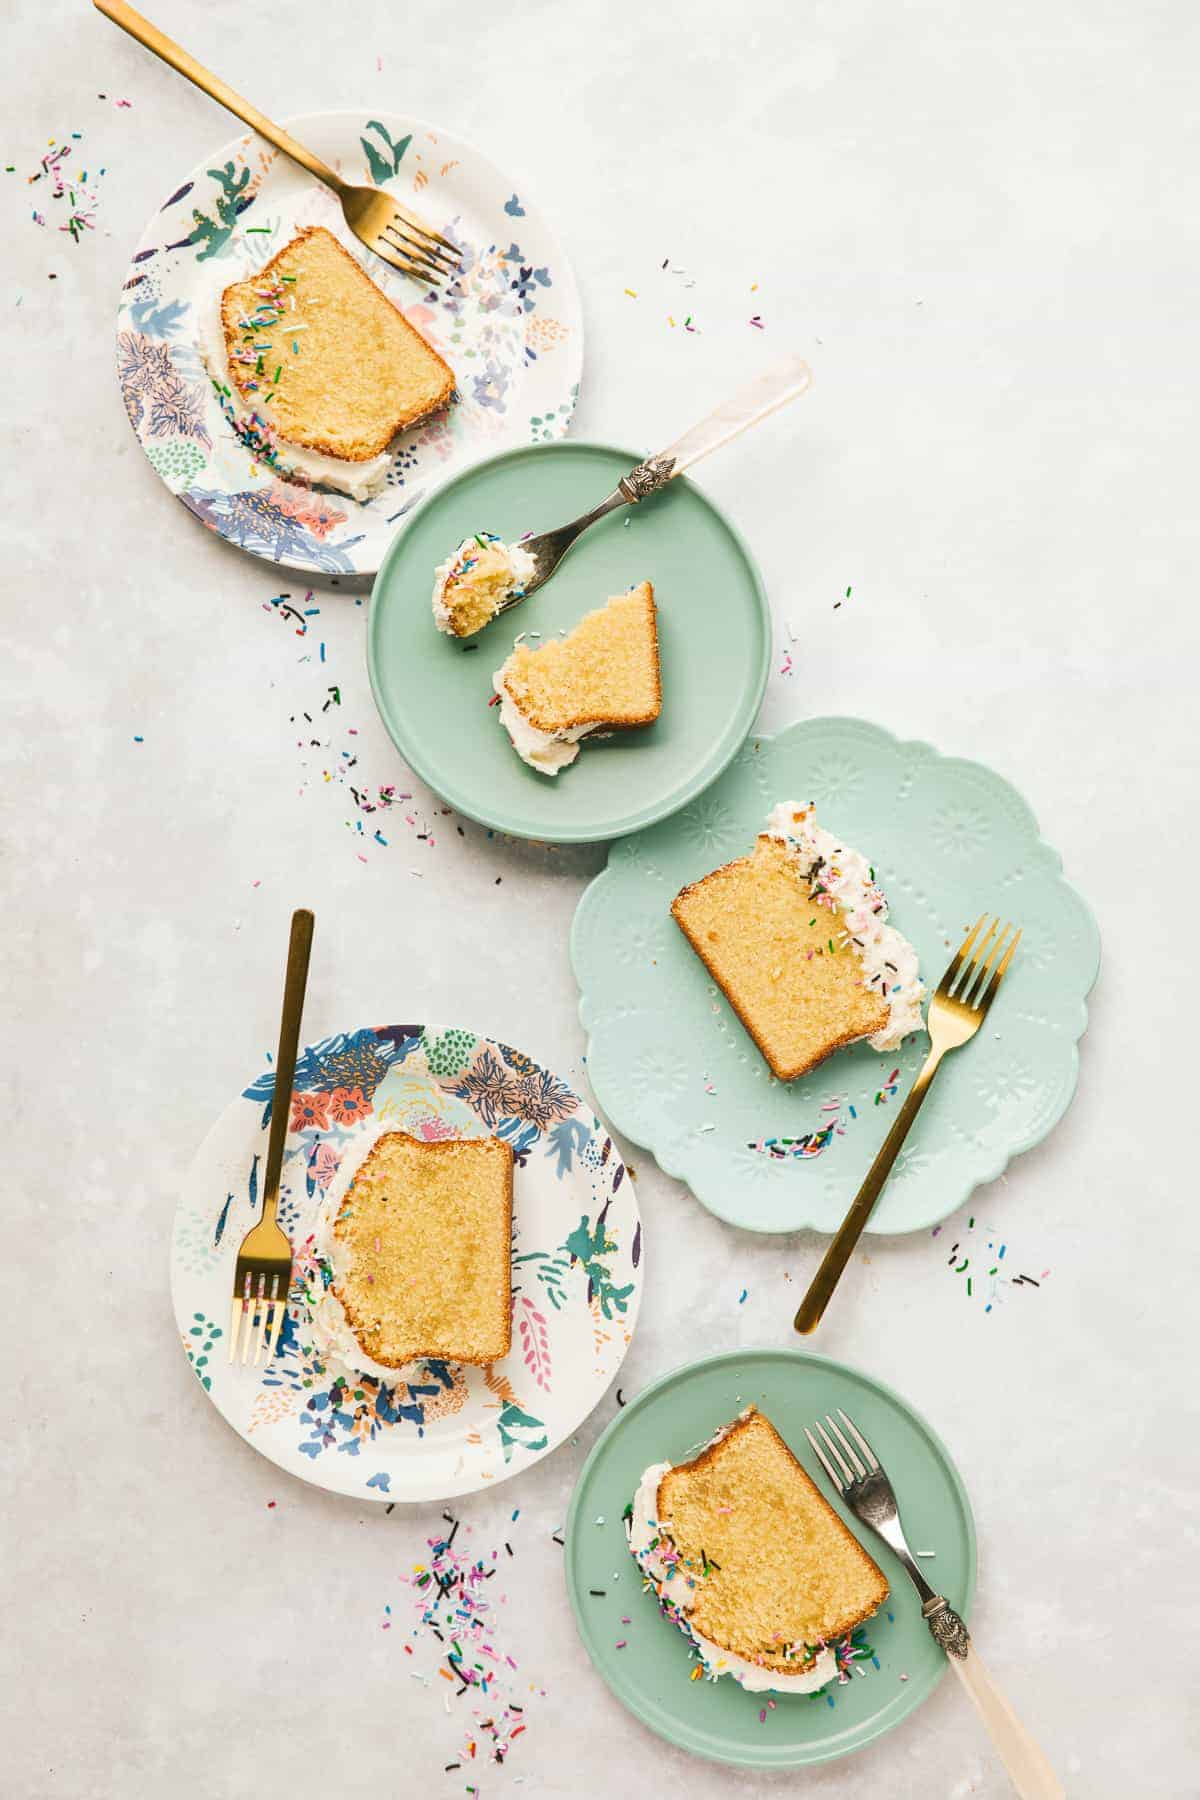 Slices of Vanilla Cake on different colour plates.